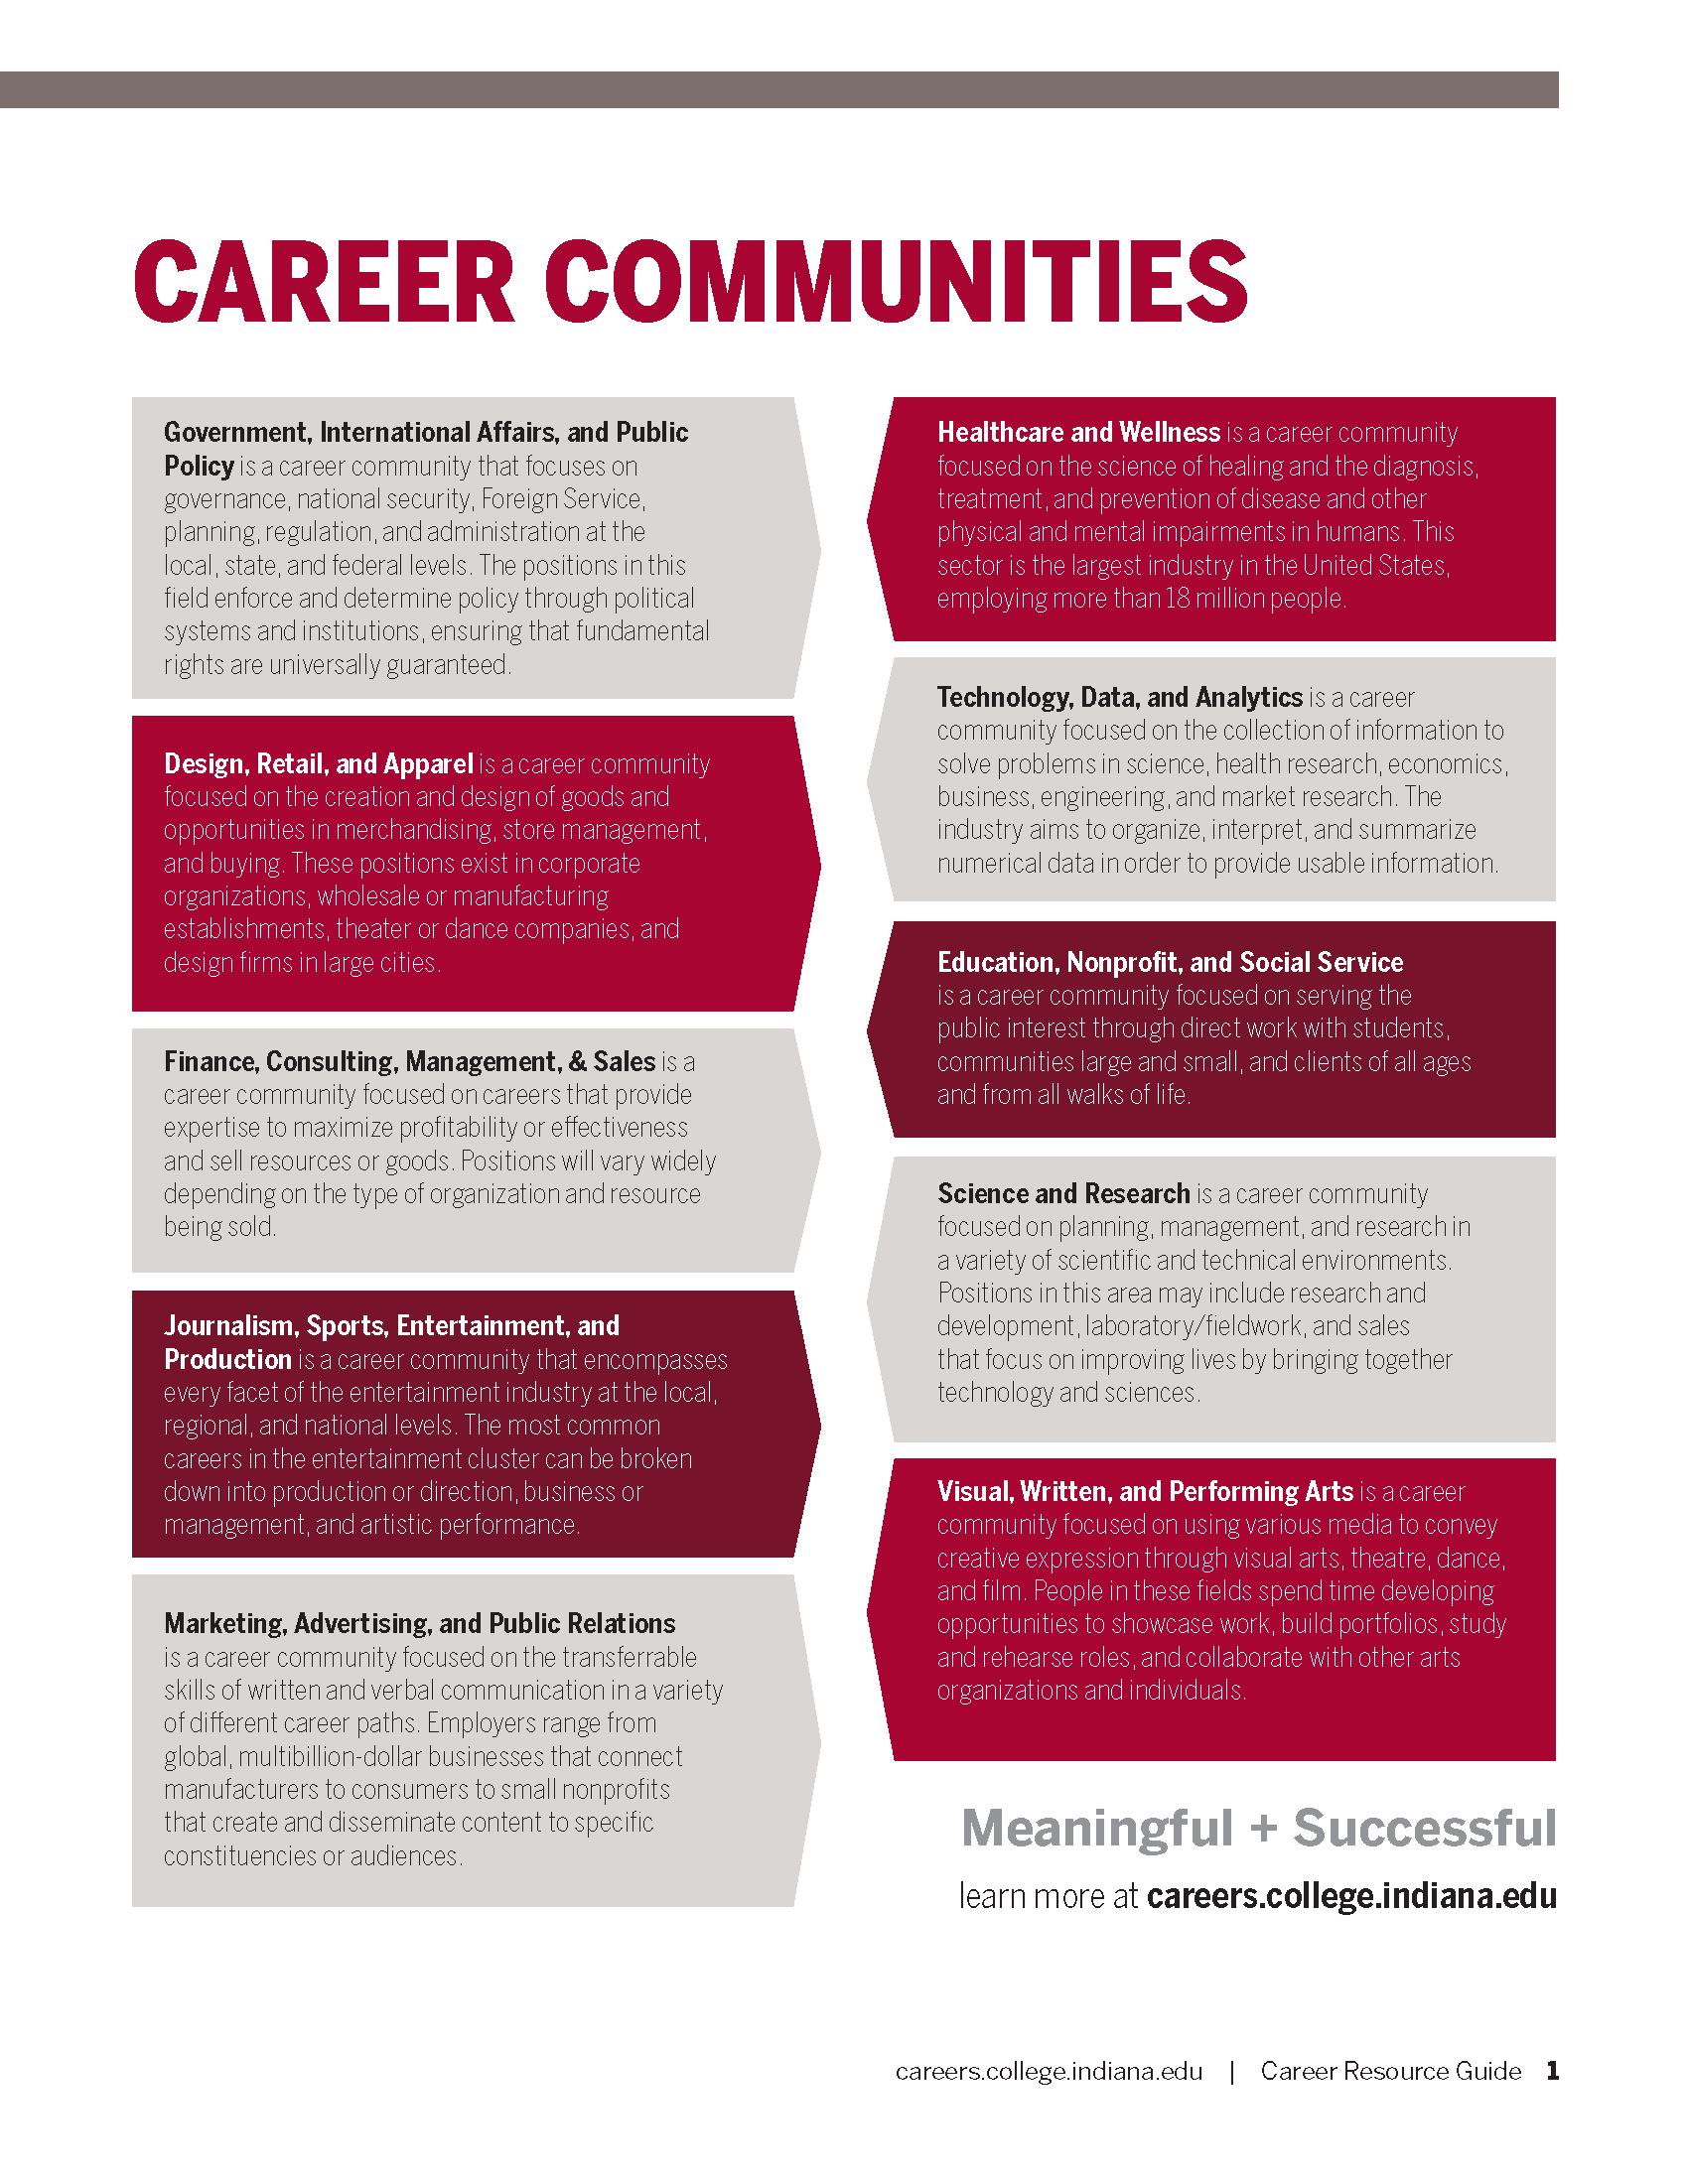 what are career communities walter center for career what are career communities walter center for career achievement the college of arts sciences na university bloomington